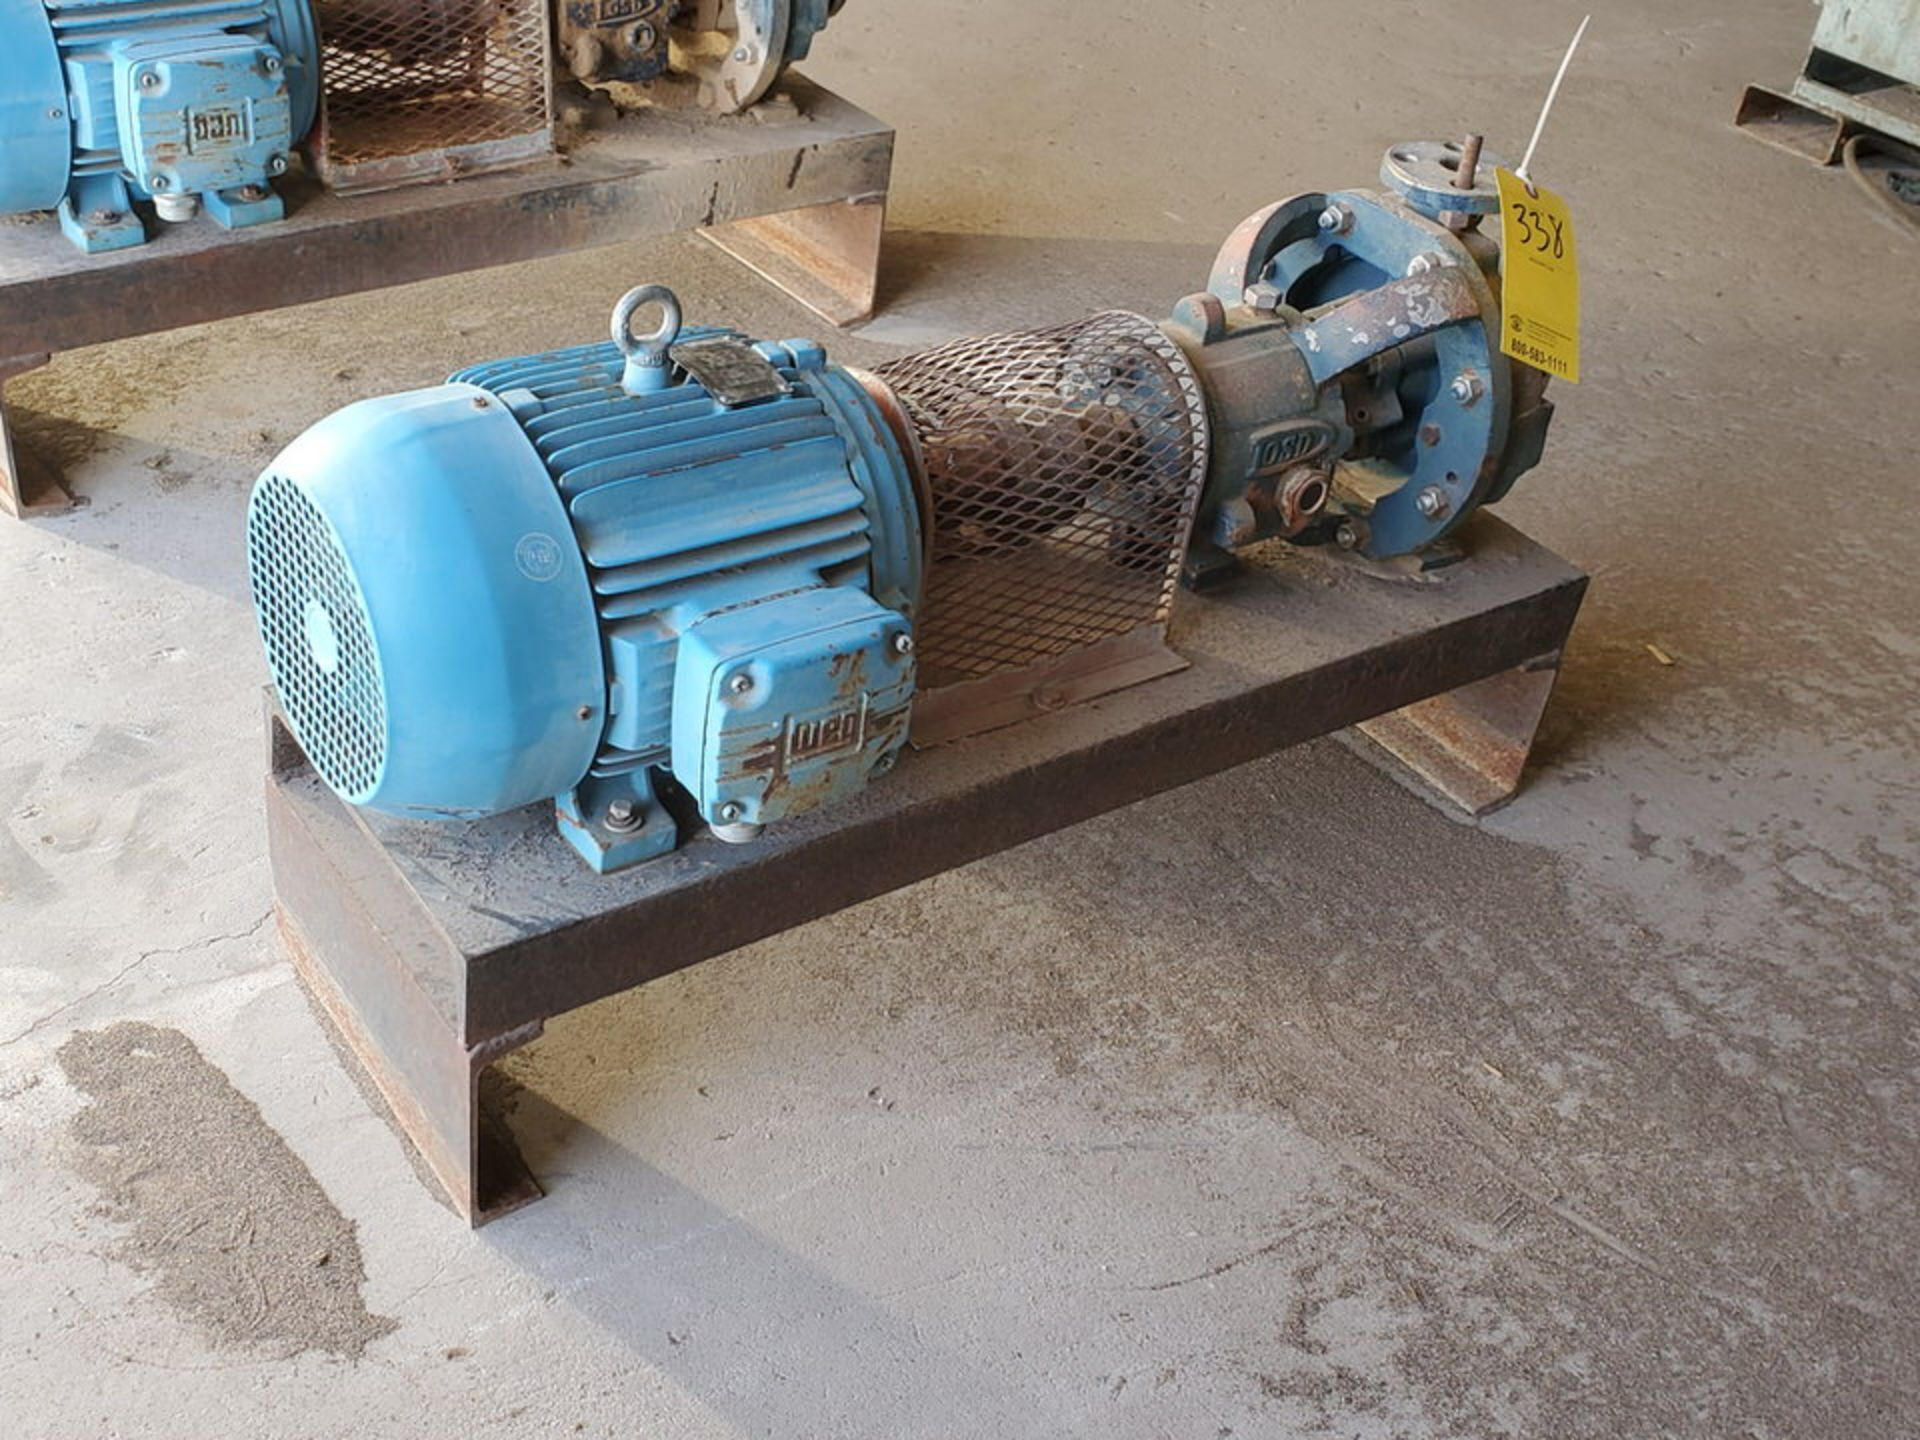 American-Marsh Pumps 1L1x1.5-6RV OSD Centrifugal Pump W/ 7.5HP Weg Motor - Image 3 of 9